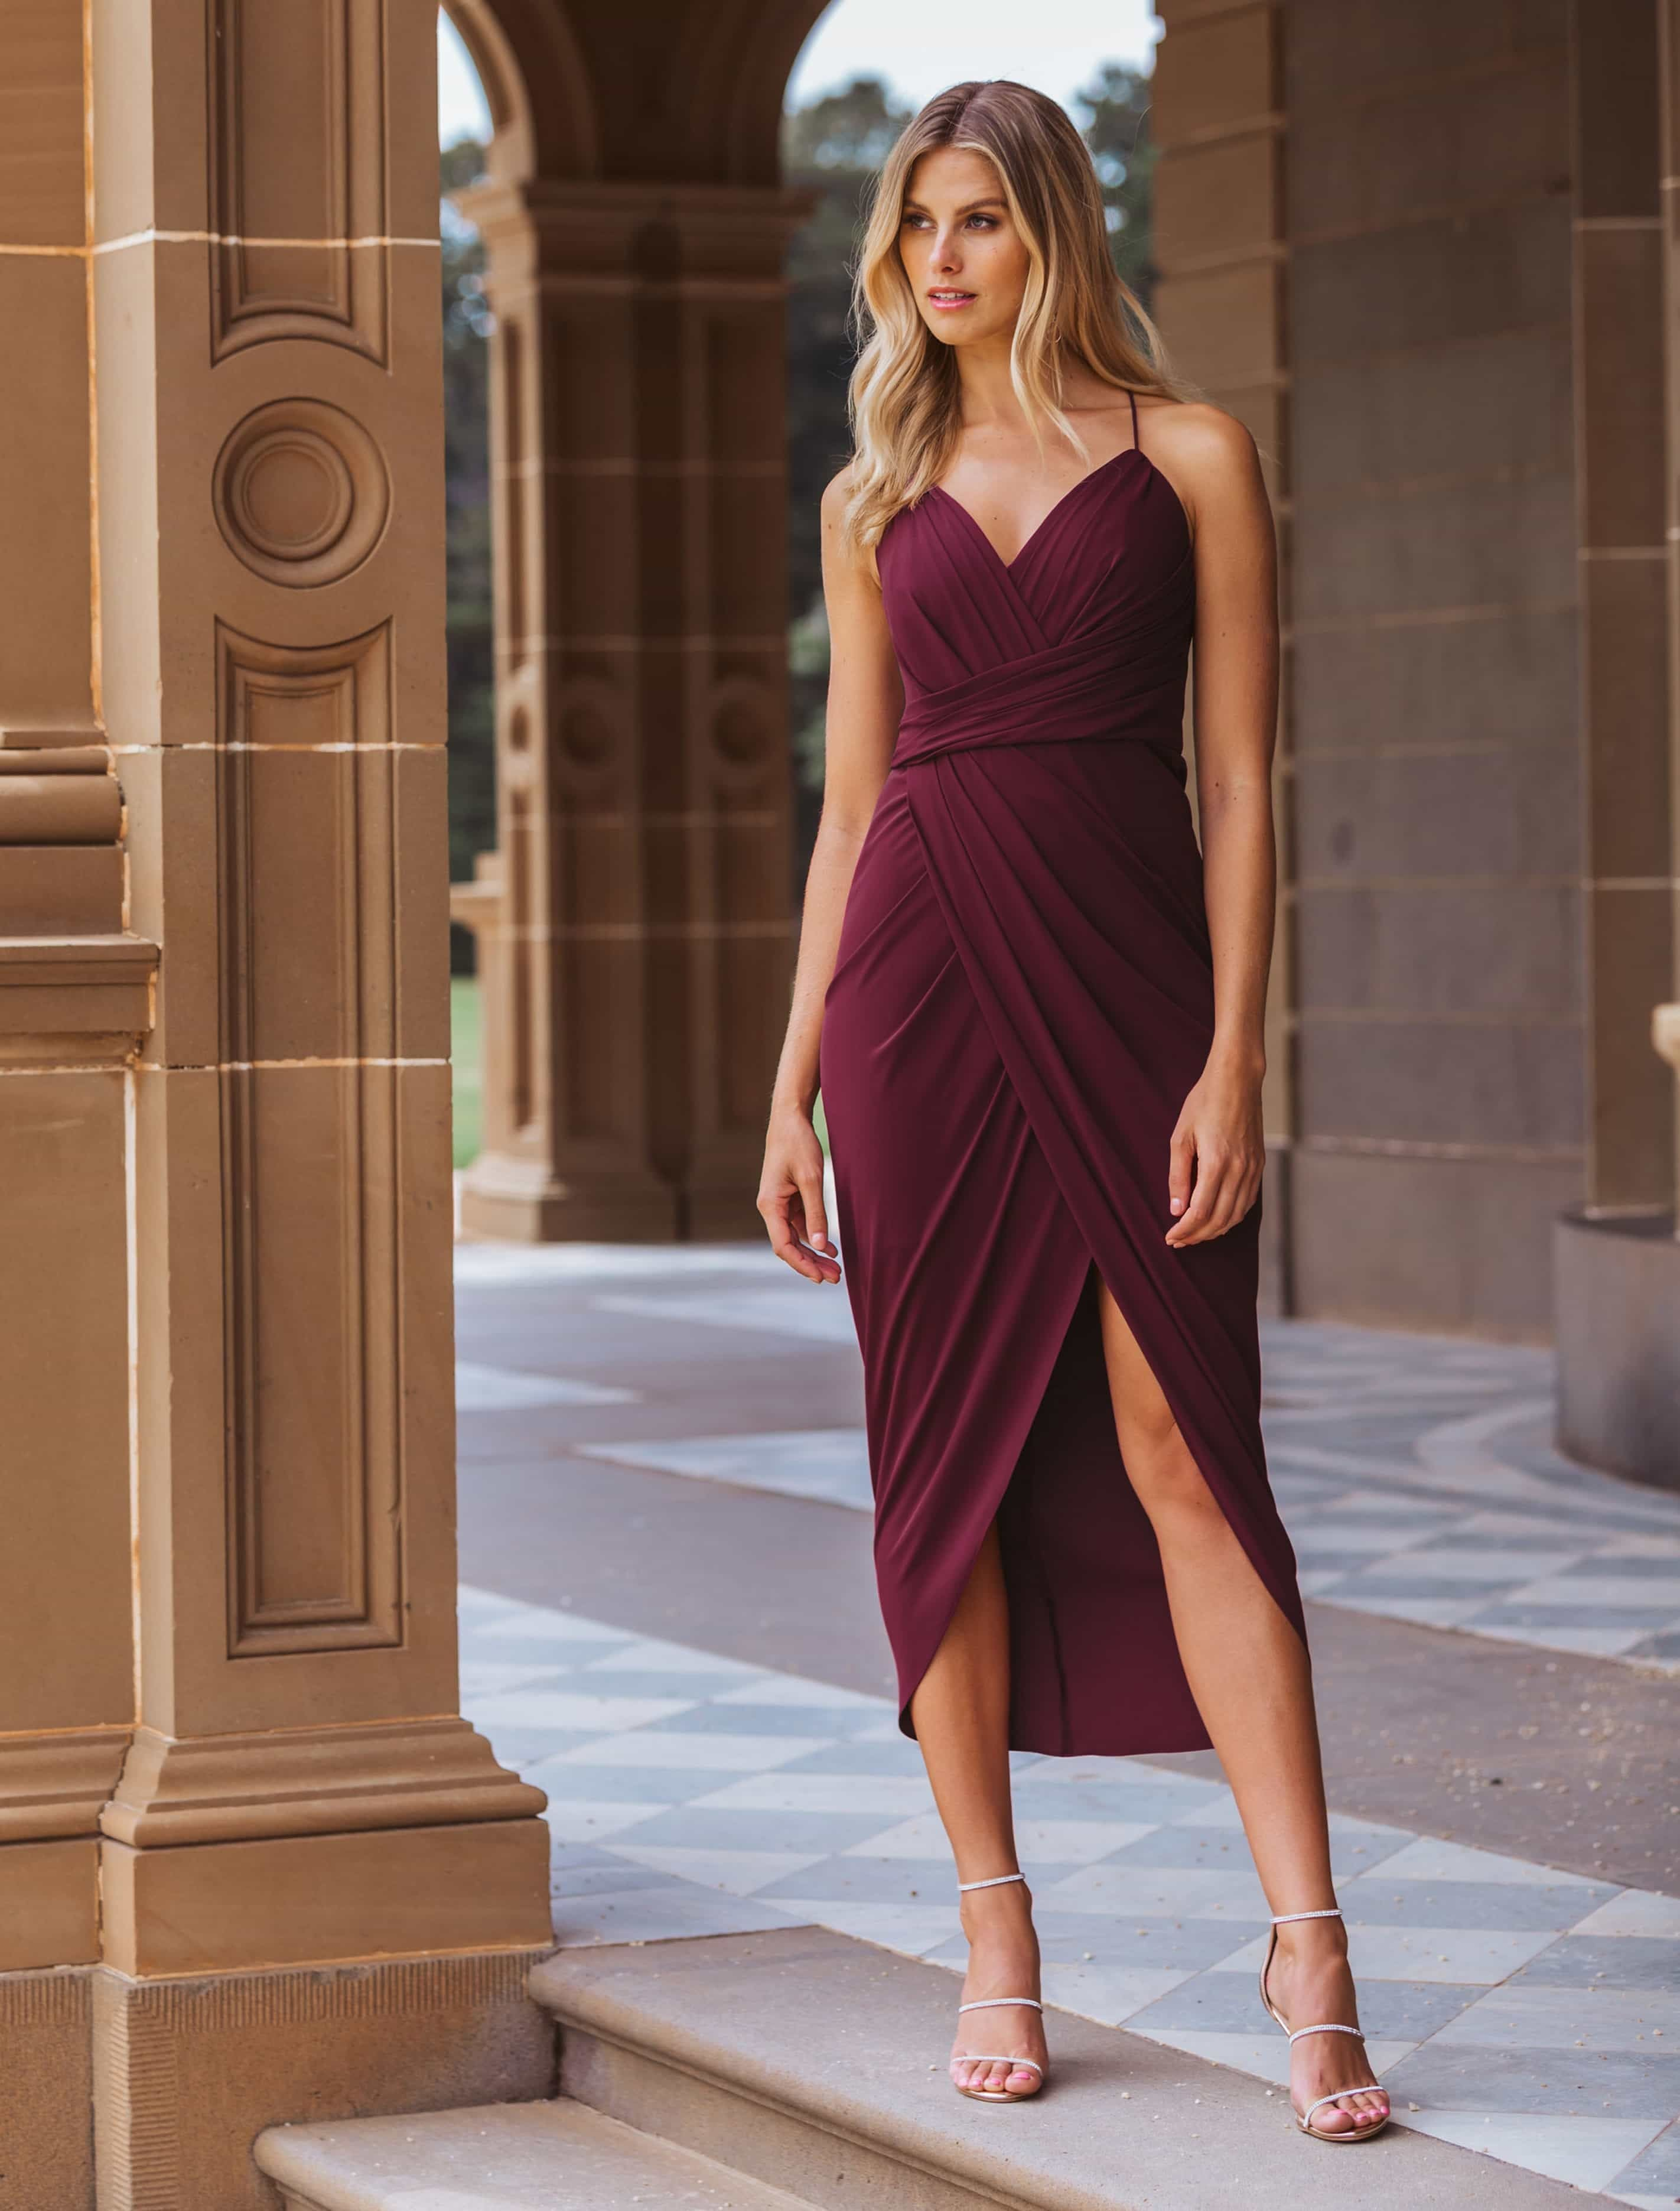 c277046accaac0 https://www.forevernew.com.au/ daily 1.0 https://www.forevernew.com ...